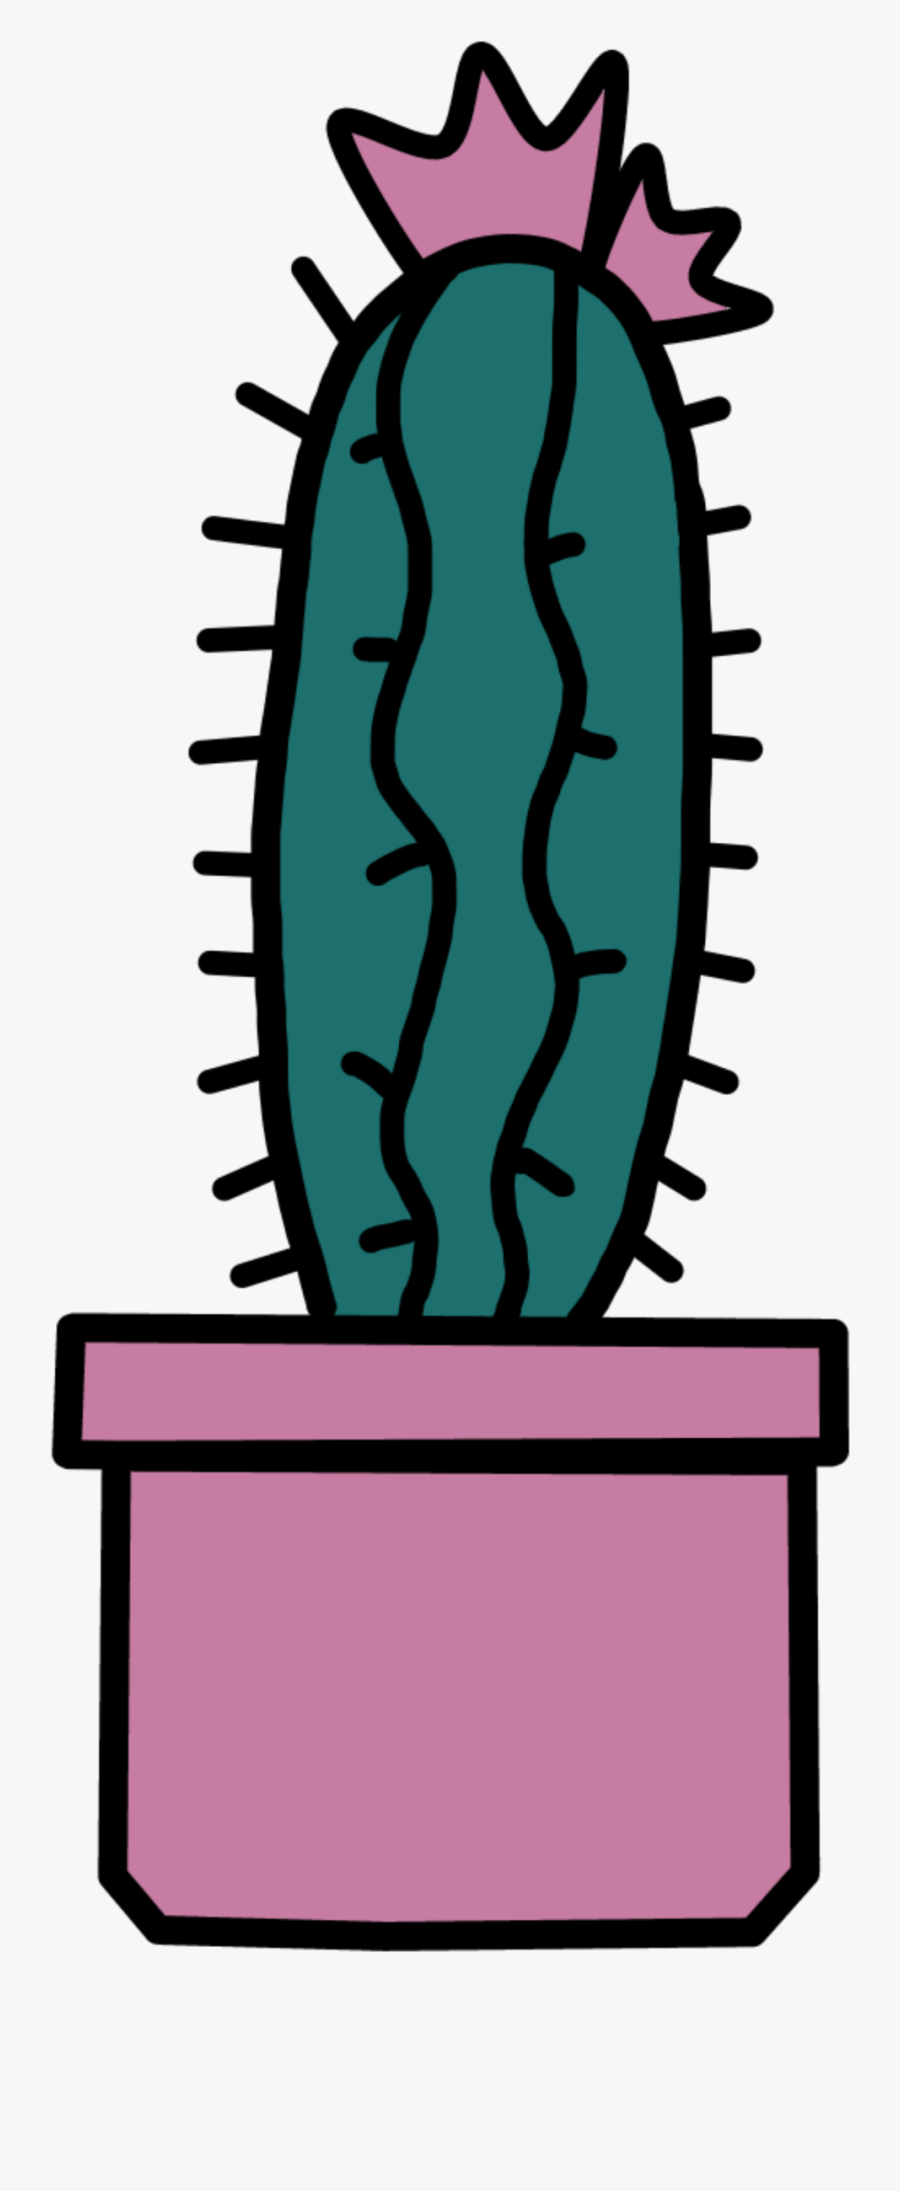 #cactus #draw #cute #pink #green #freetoedit #ftestickers - Prickly Pear, Transparent Clipart